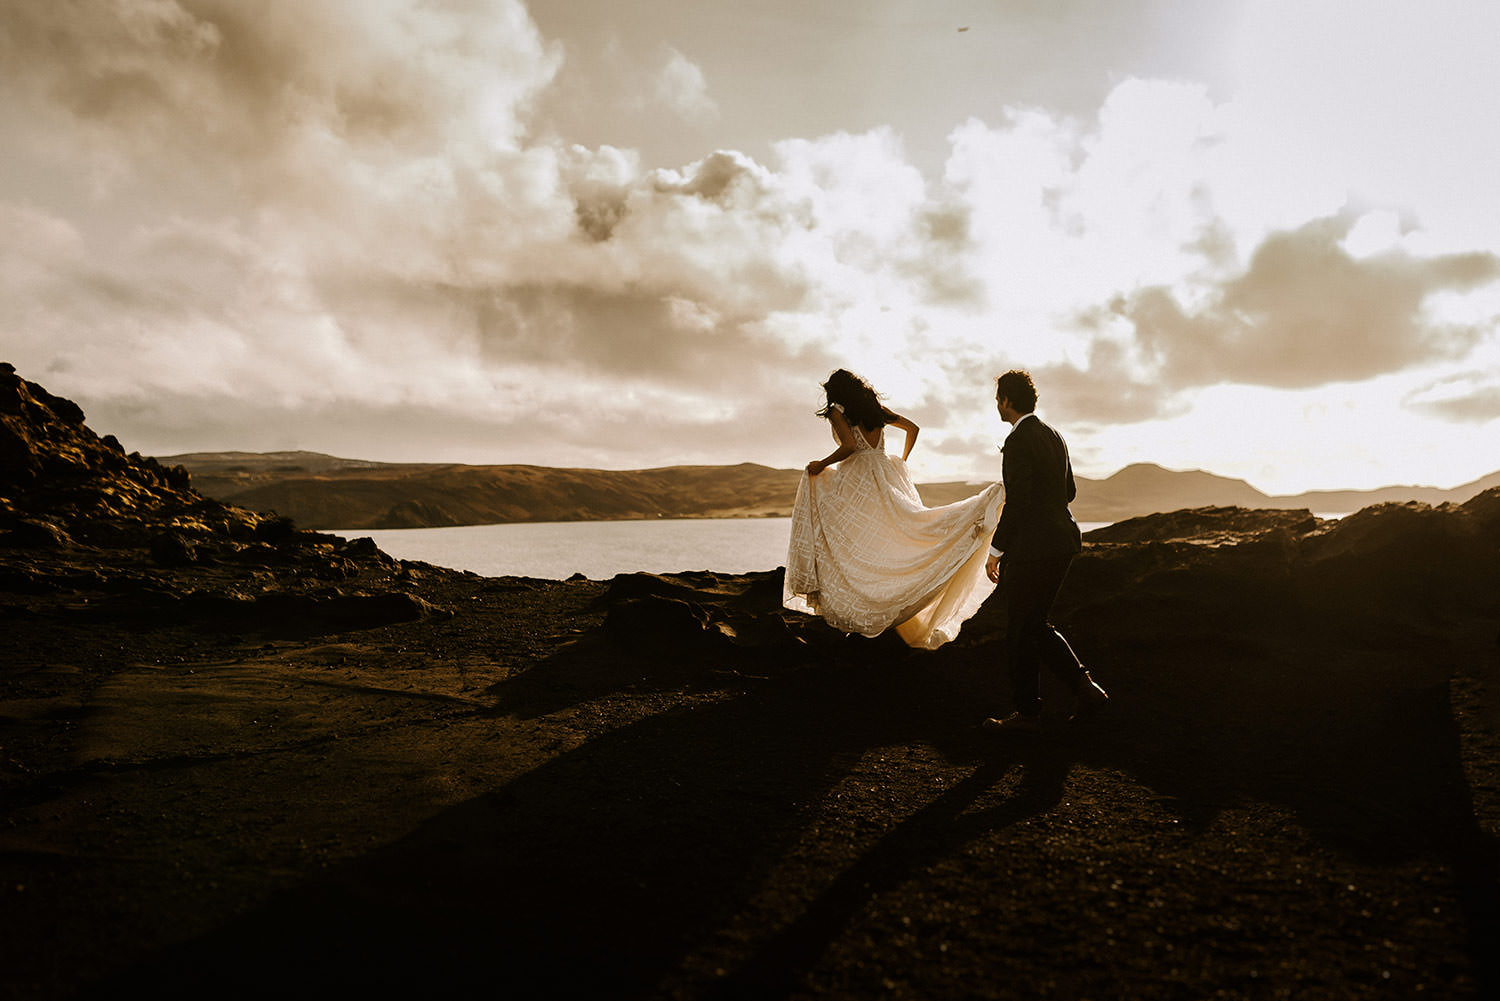 Photograph by Iceland elopement photographer of groom holding bride's dress train as they walk together in Iceland mountains